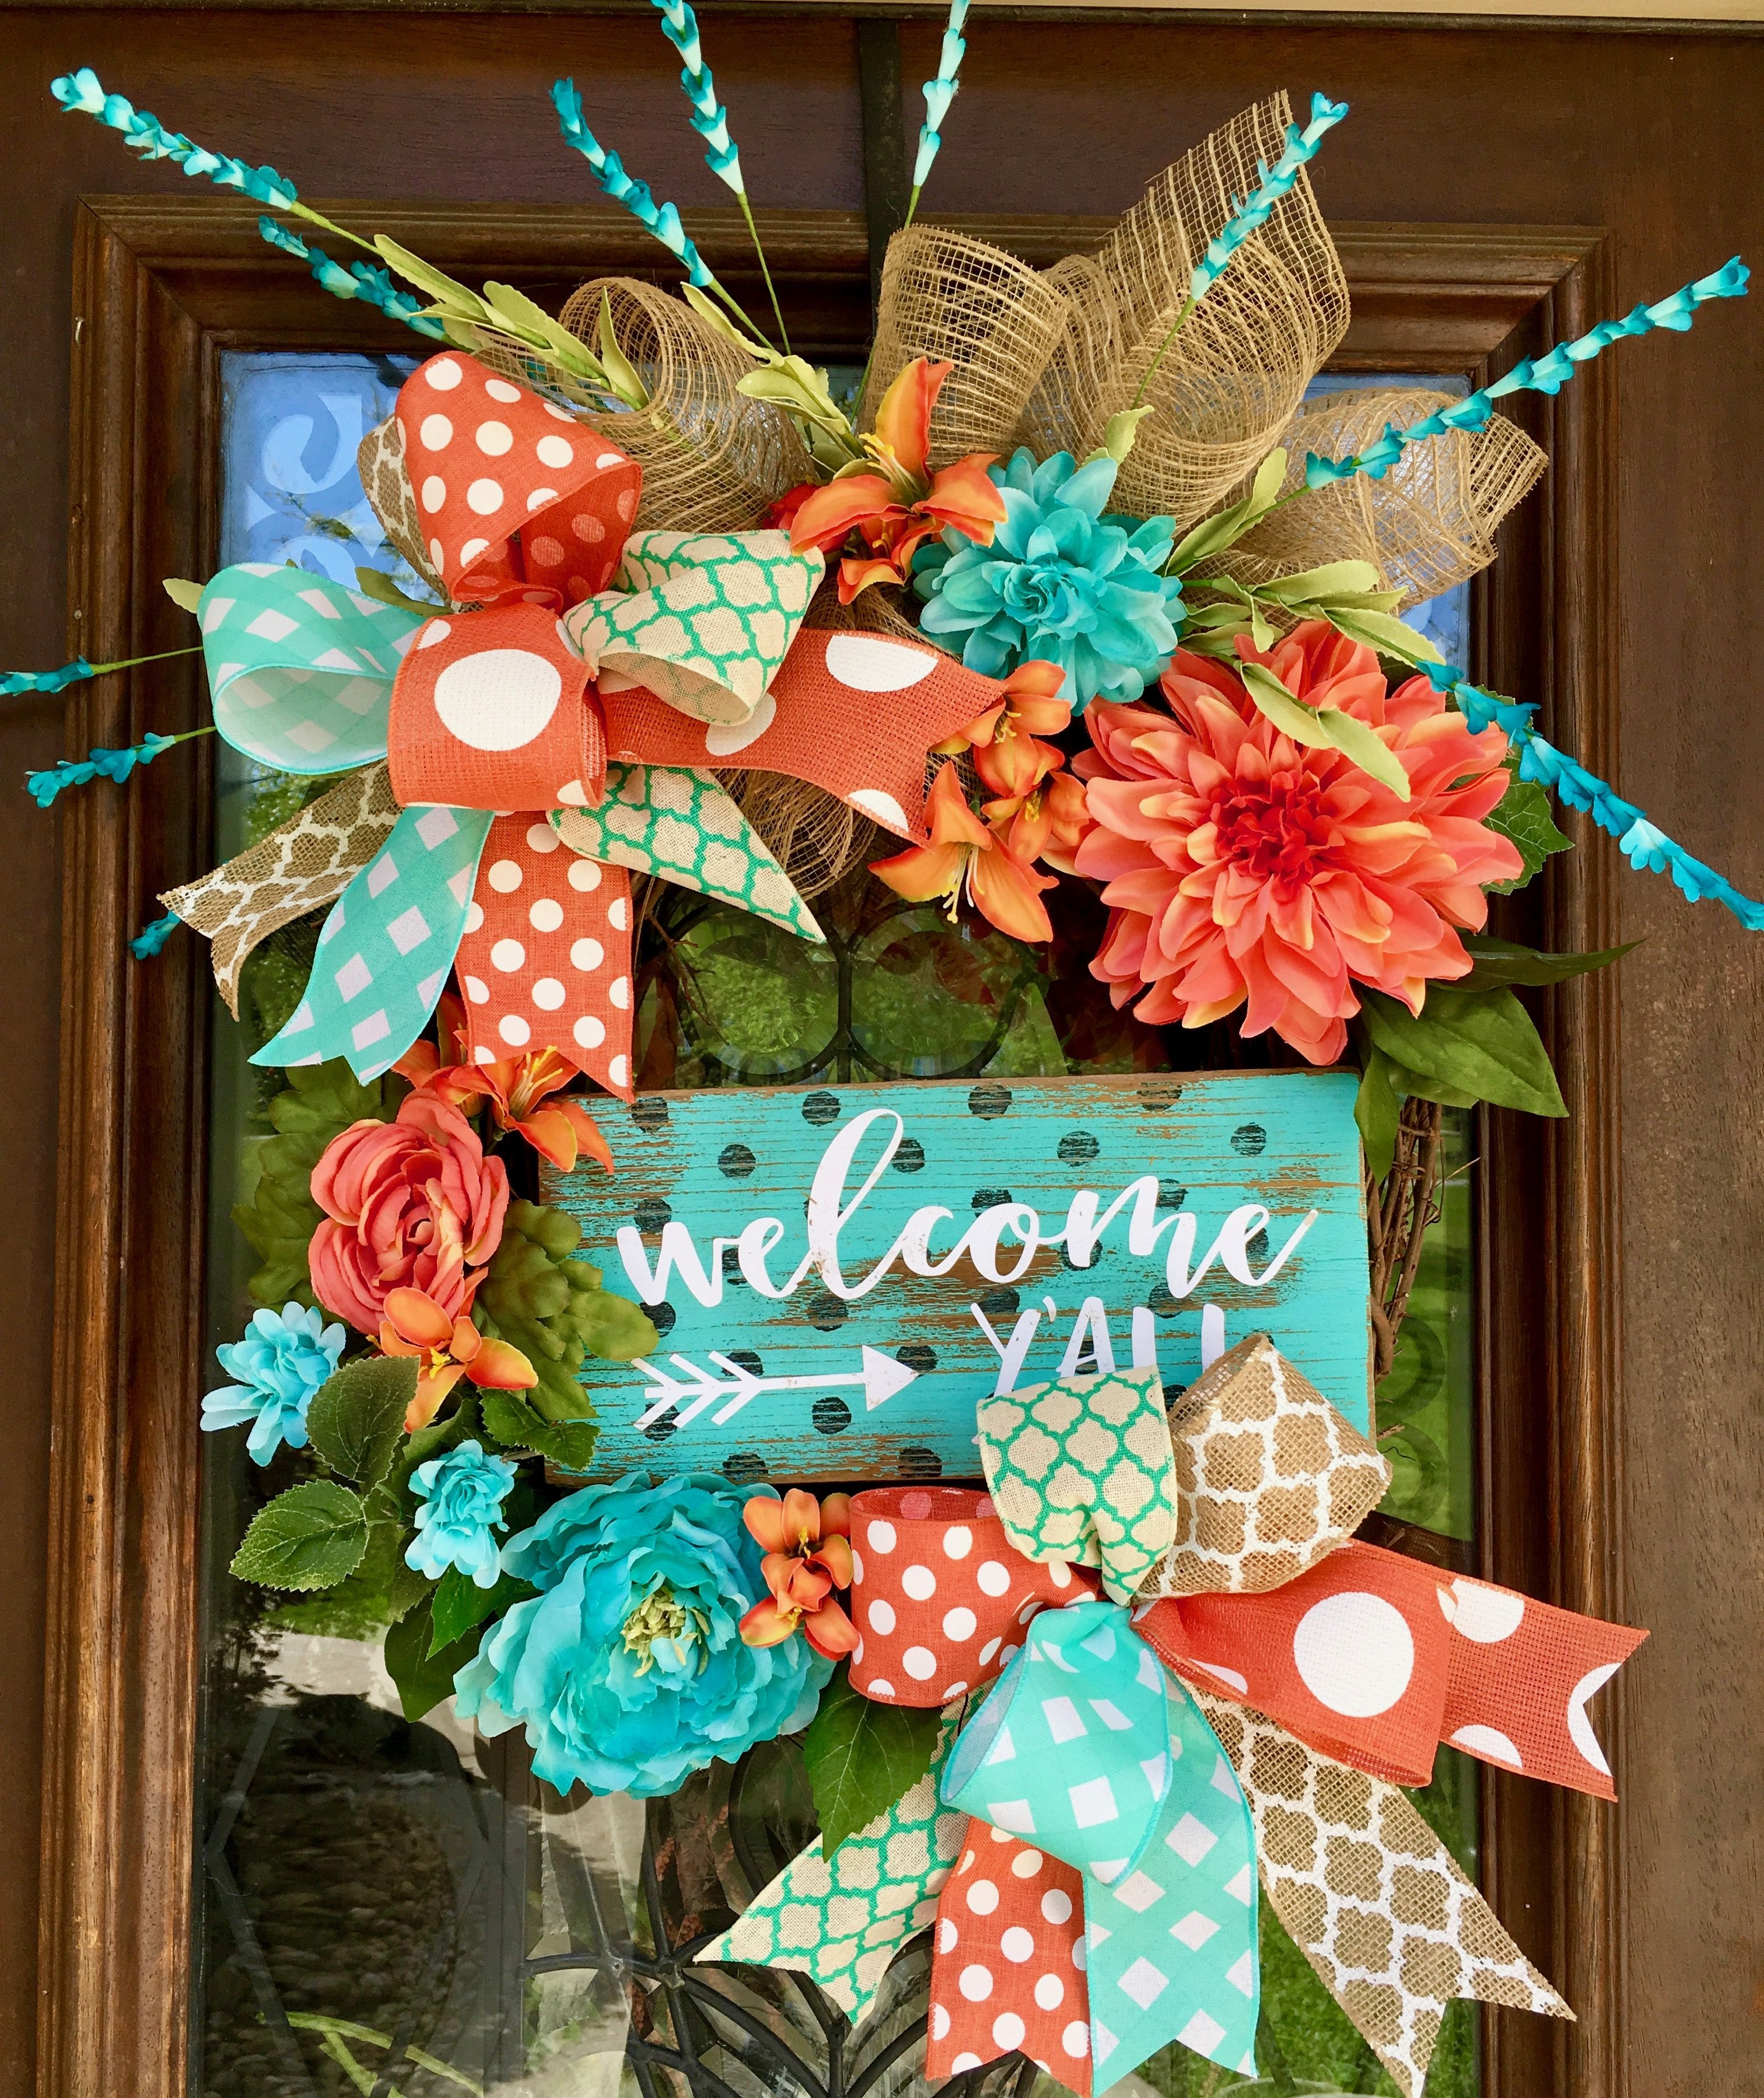 About Vine Wreath On Pinterest Wreaths Grapevine Wreath And Burlap - Bright colored turquoise and coral grapevine wreath perfect for summer or spring https grapevine wreathdoor wreathsburlap